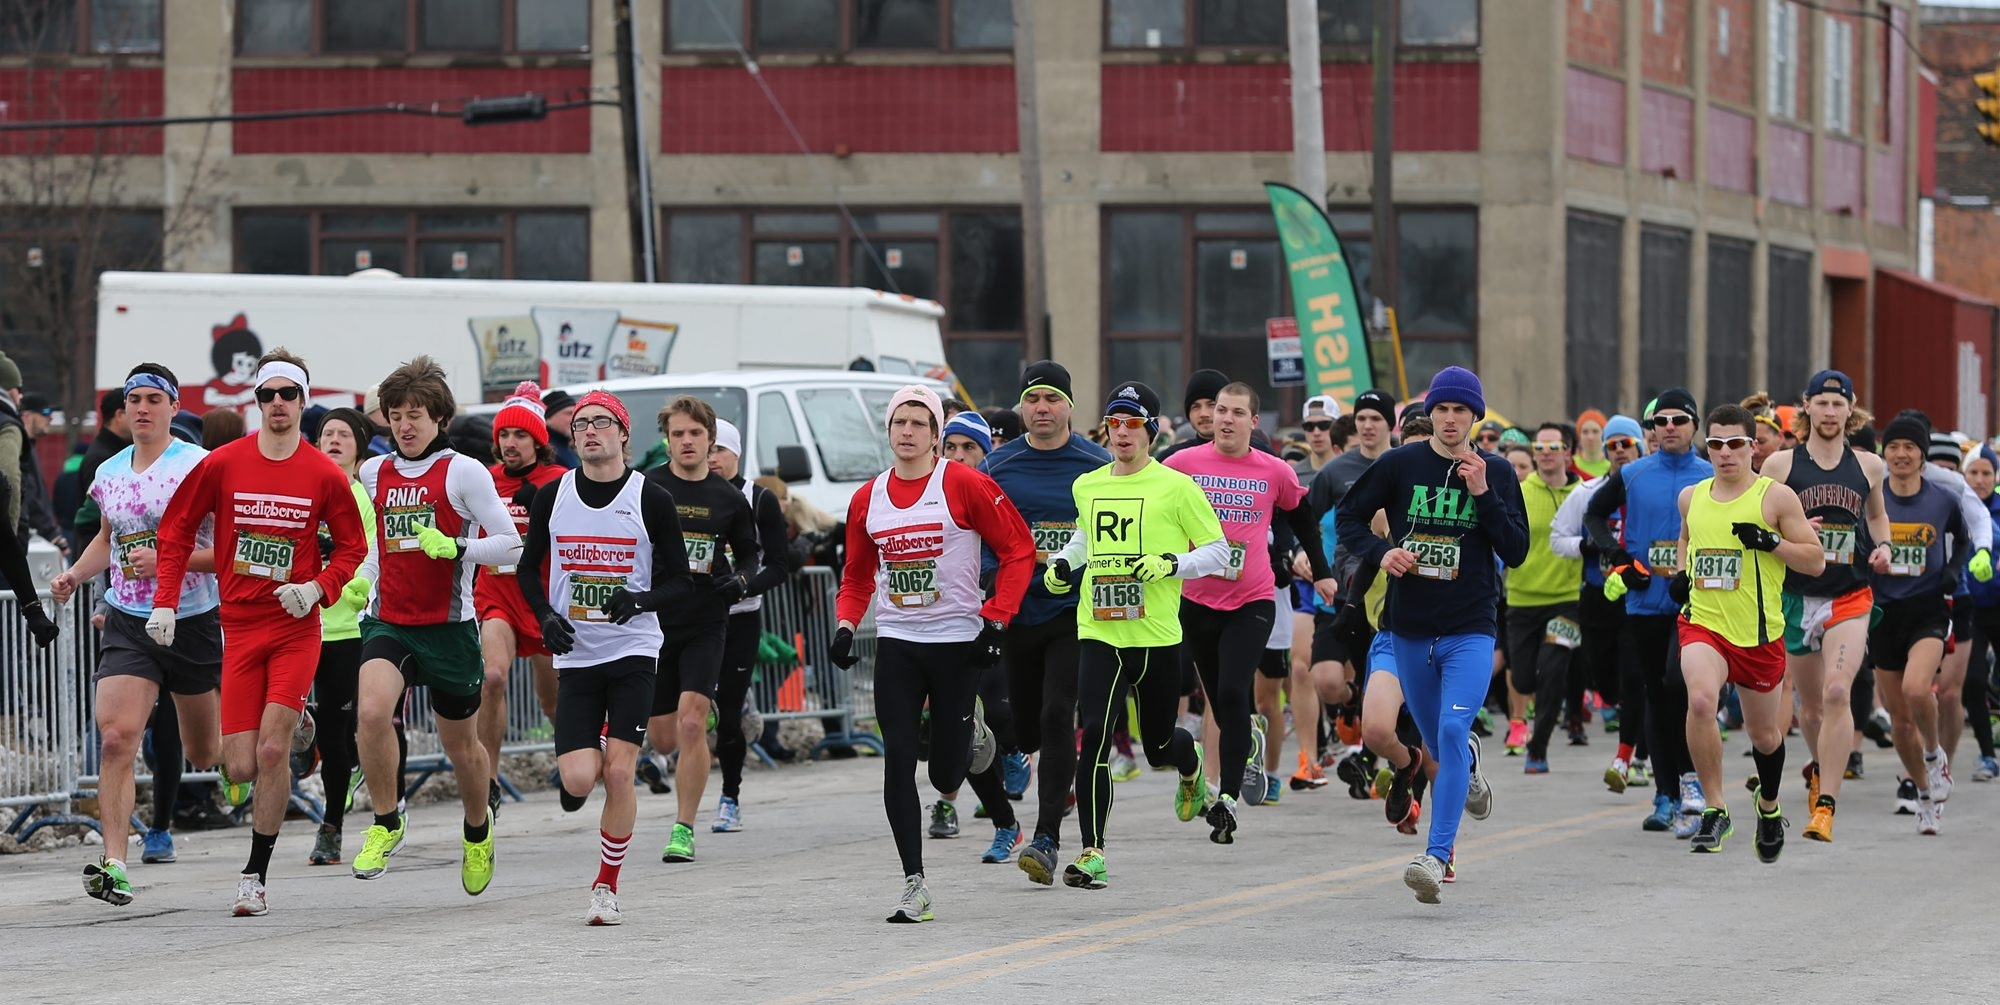 Runners hit the road in Buffalo's Old First Ward on Saturday for the annual Shamrock Run. About 4,900 entrants took part on what turned out to be a seasonable winter day. See a photo gallery on buffalonews.com.